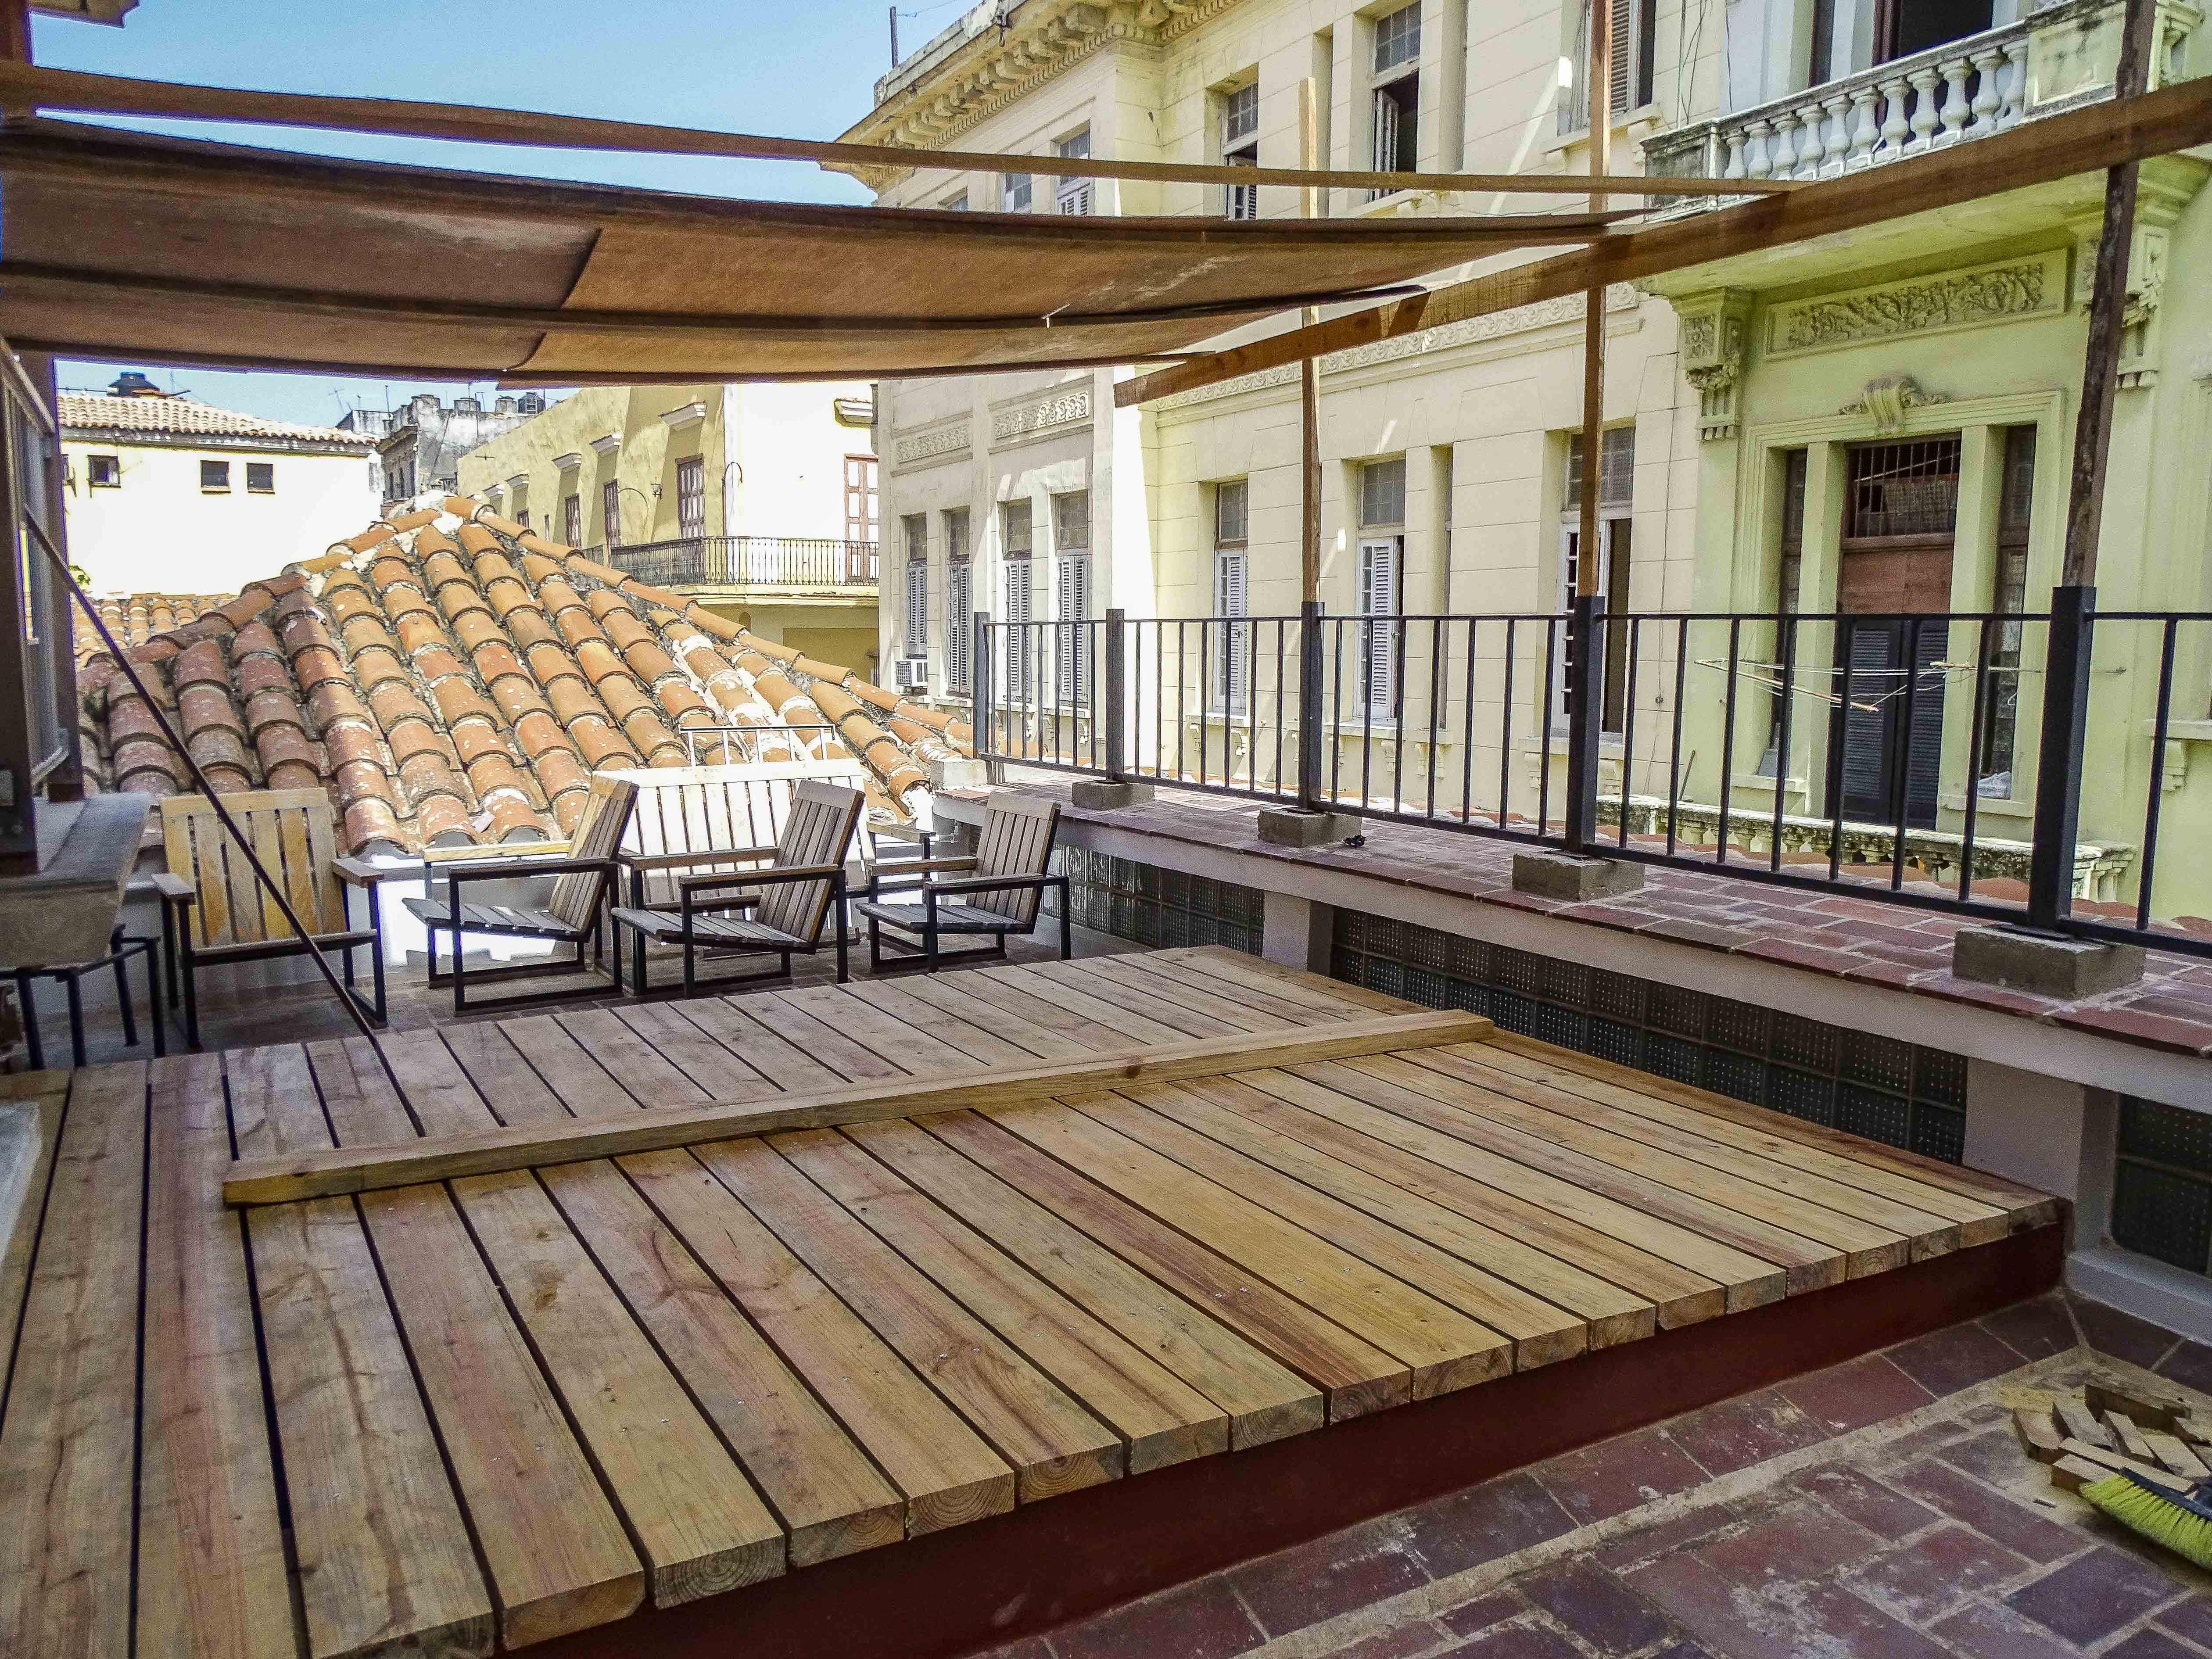 Restored outdoor area in a historical structure in Old Havana   © Amber C. Snider